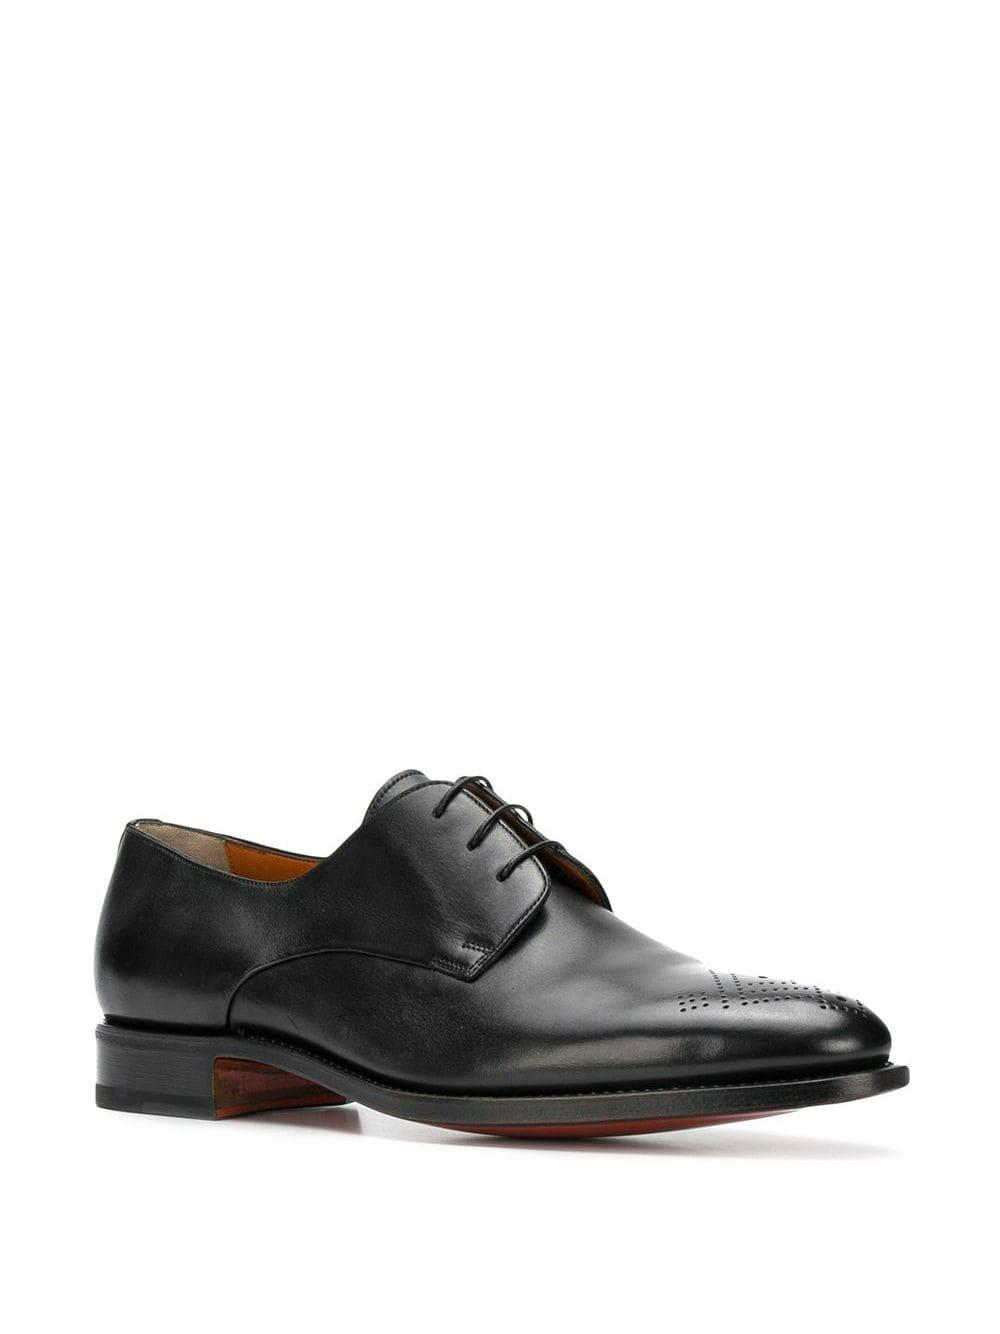 Santoni Leather Lace-up Oxford Shoes in Black for Men